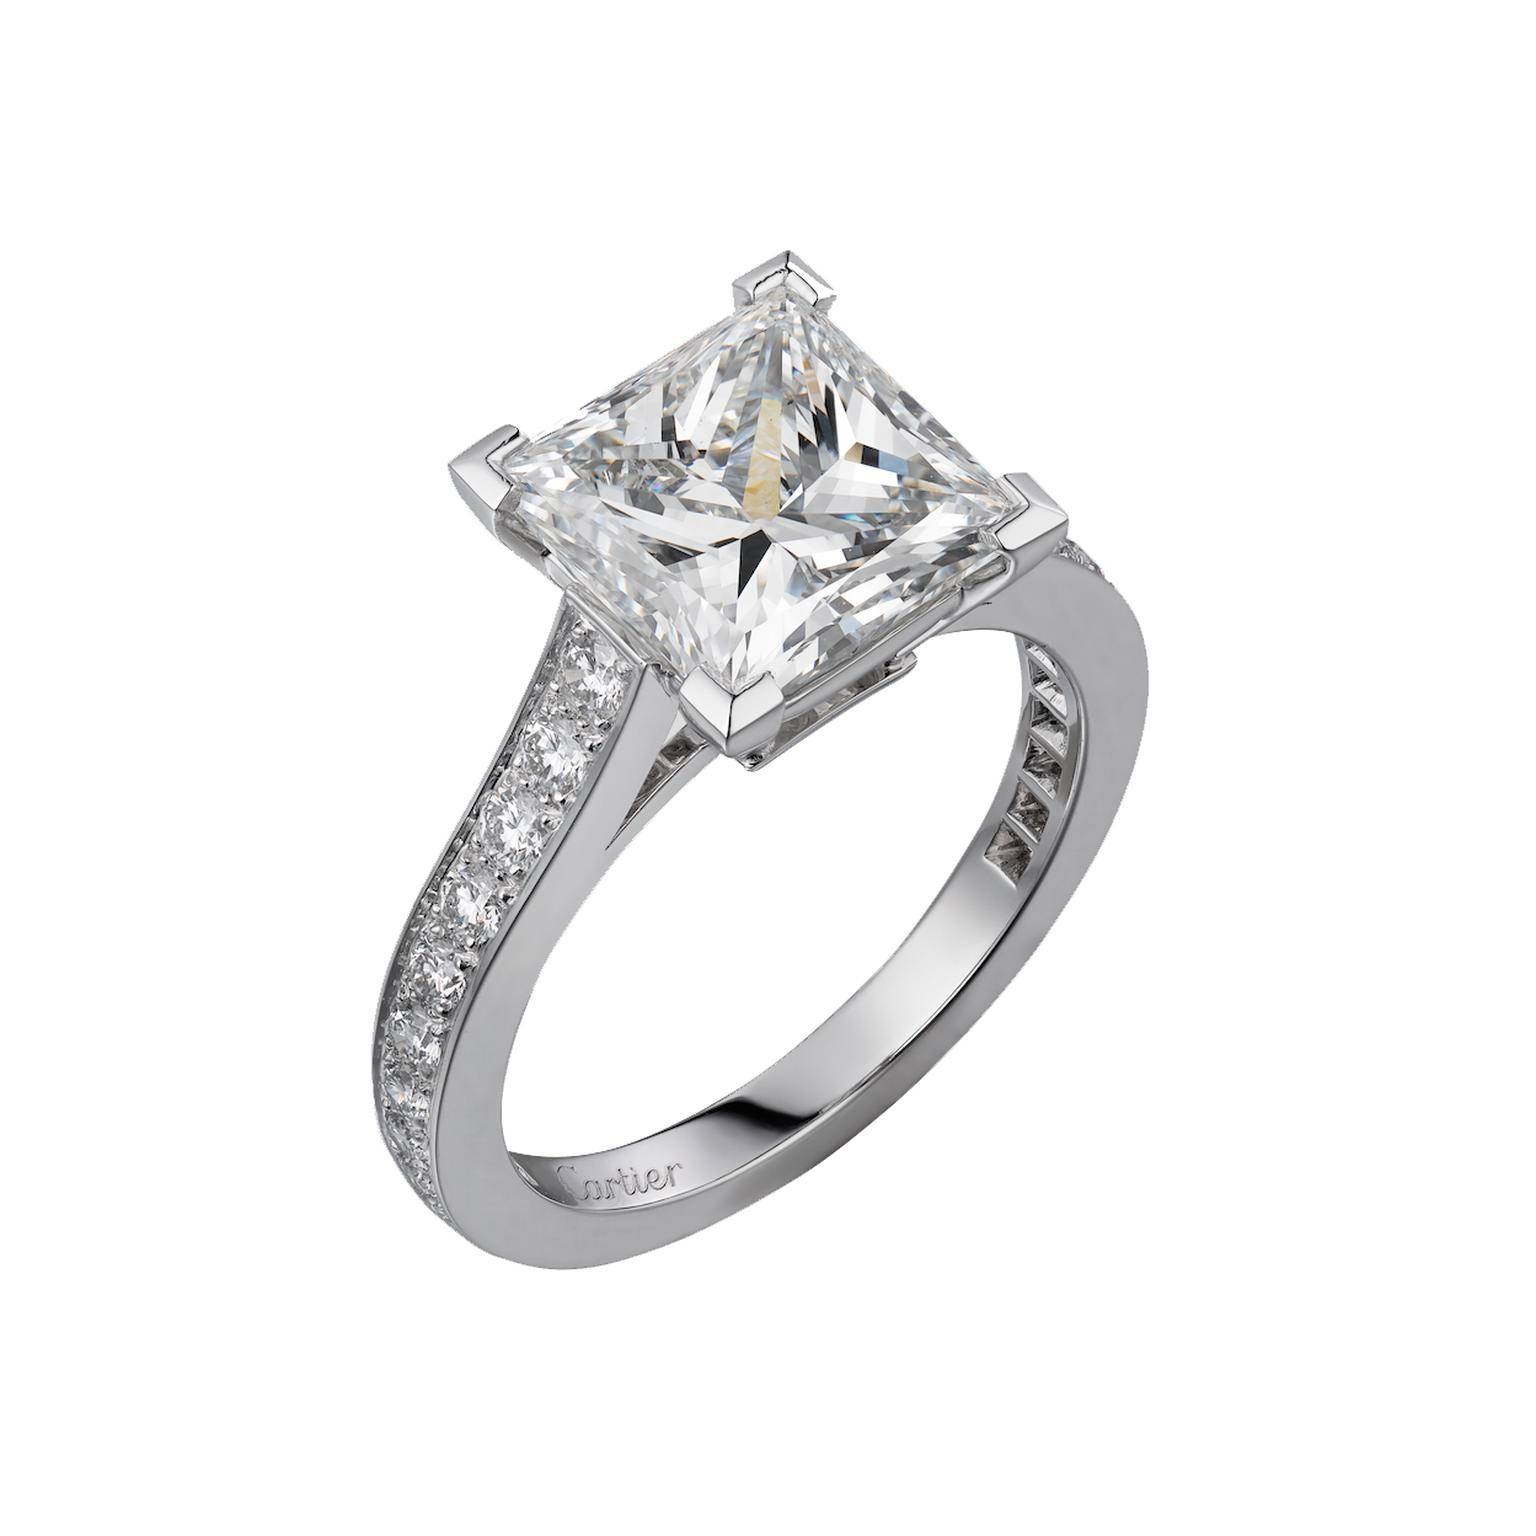 1895 Solitaire Princess Cut Diamond Engagement Ring | Cartier Throughout Unique Princess Cut Diamond Engagement Rings (View 3 of 15)